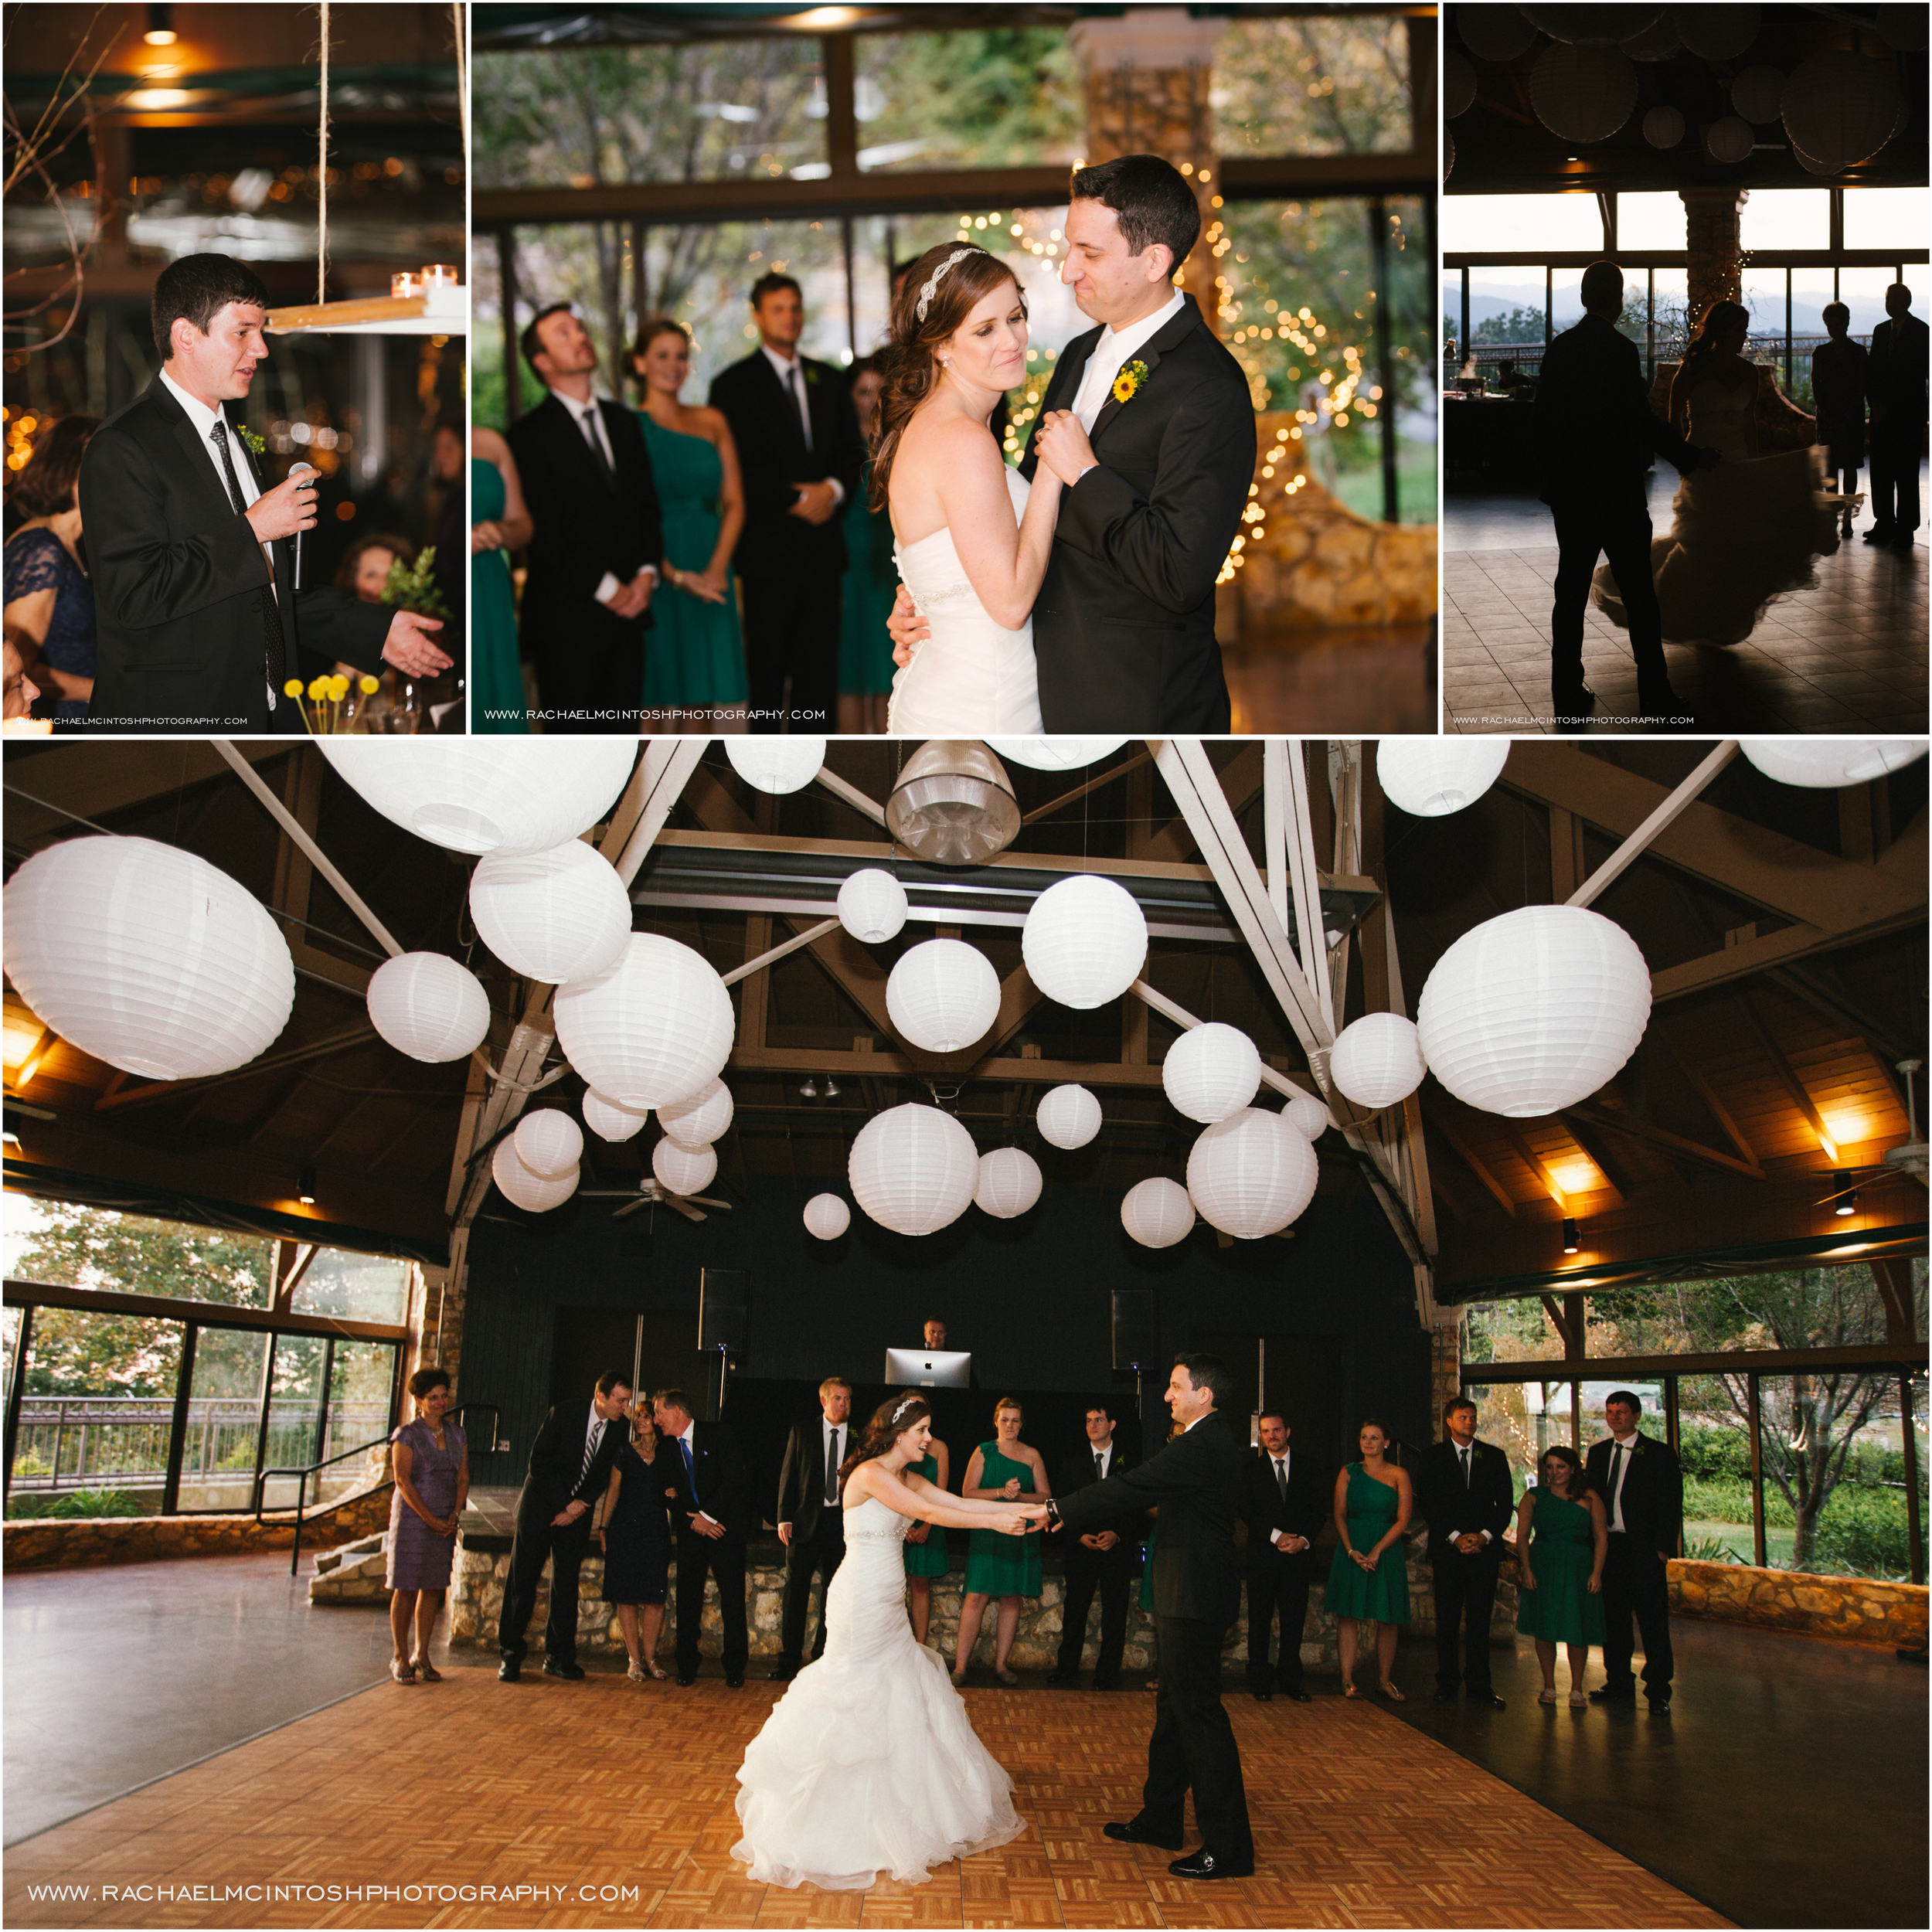 Asheville Wedding Photographer-Crest Center Wedding-Erin & Brian's Biltmore Wedding 70.jpg